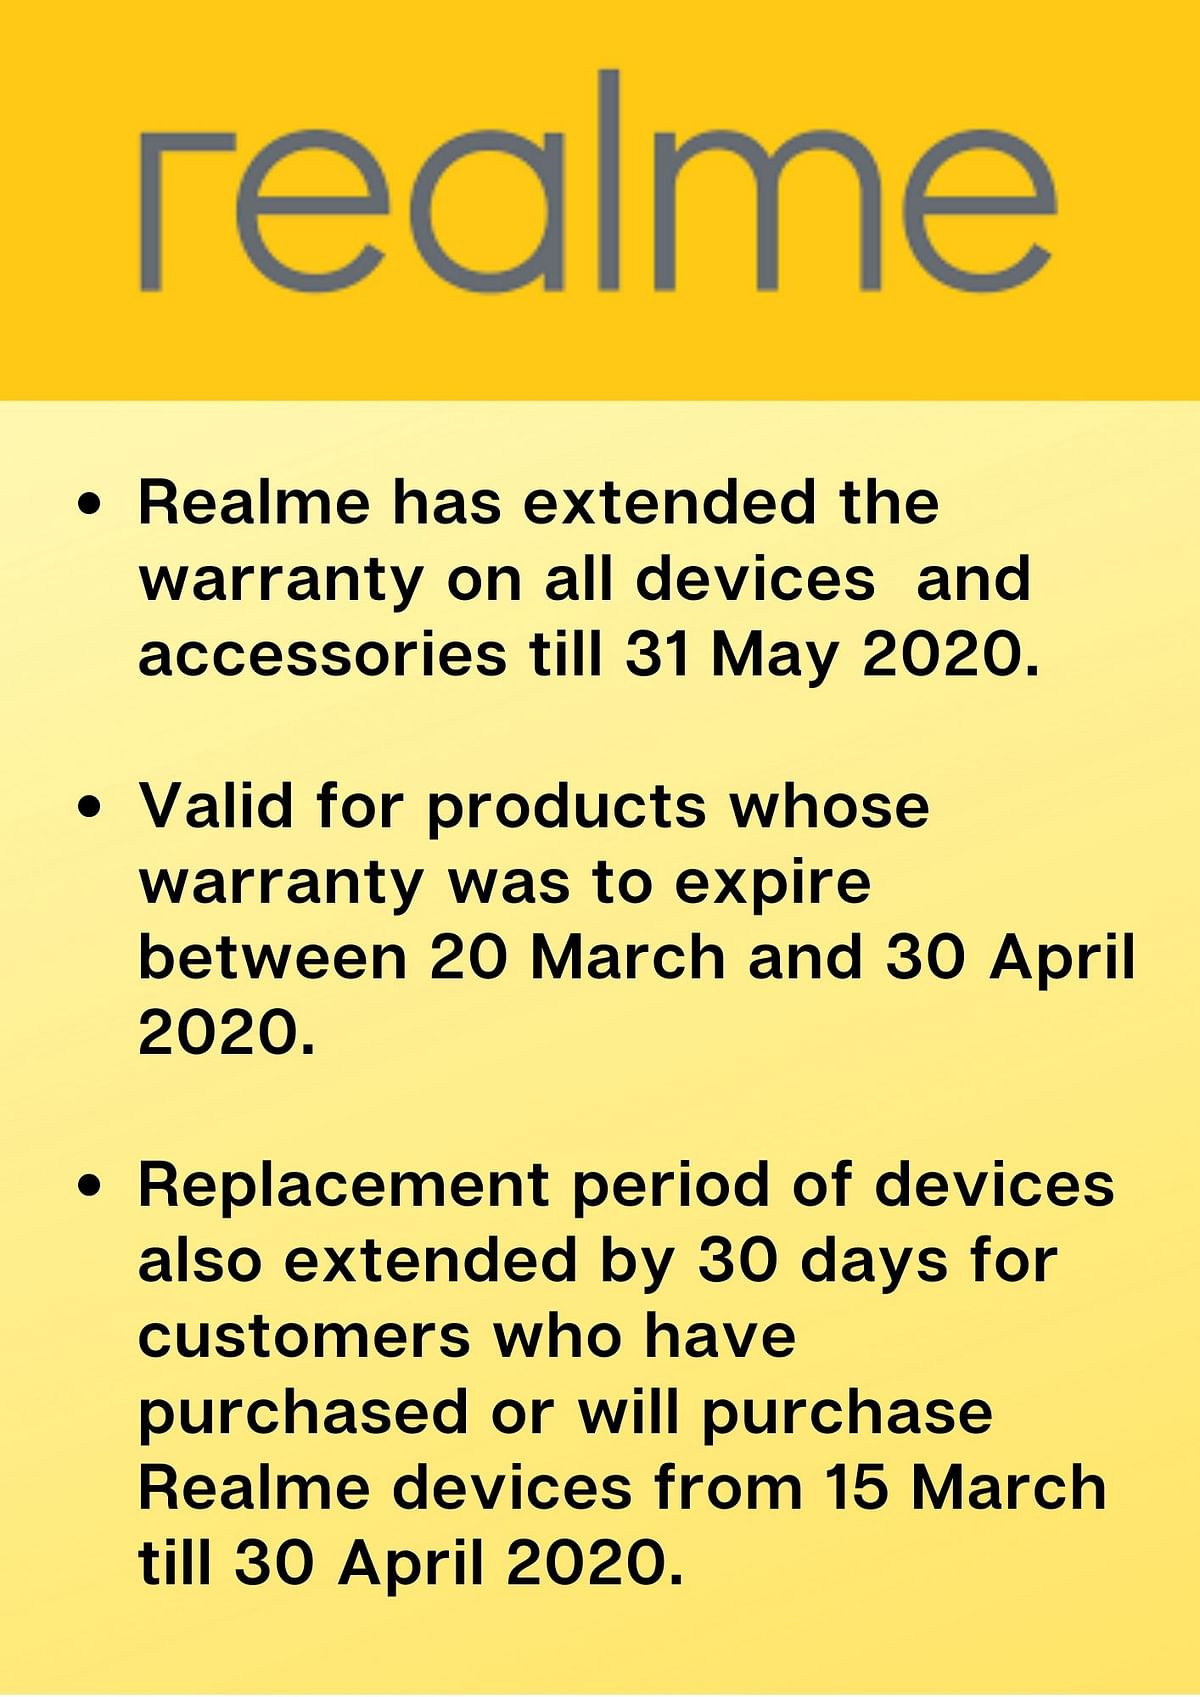 The extended warranty is valid for deviceswhose warranty was to expire between 20 March and 30 April 2020.